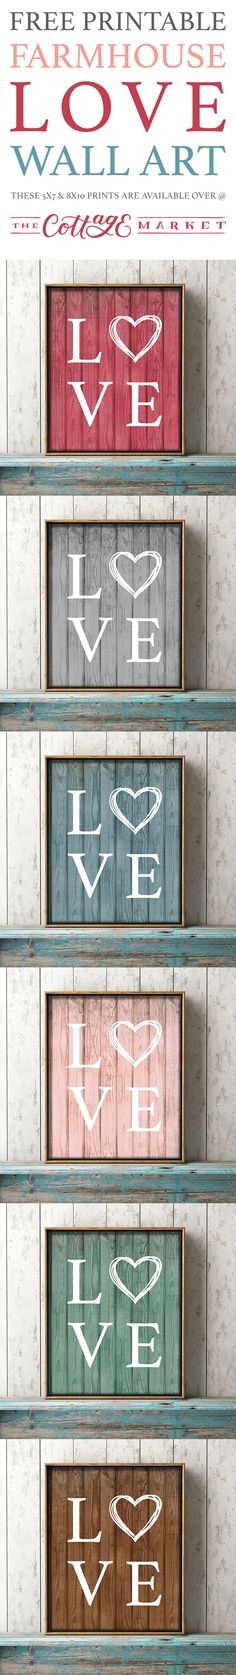 Free Printable Farmhouse Love Wall Art - The Cottage Market